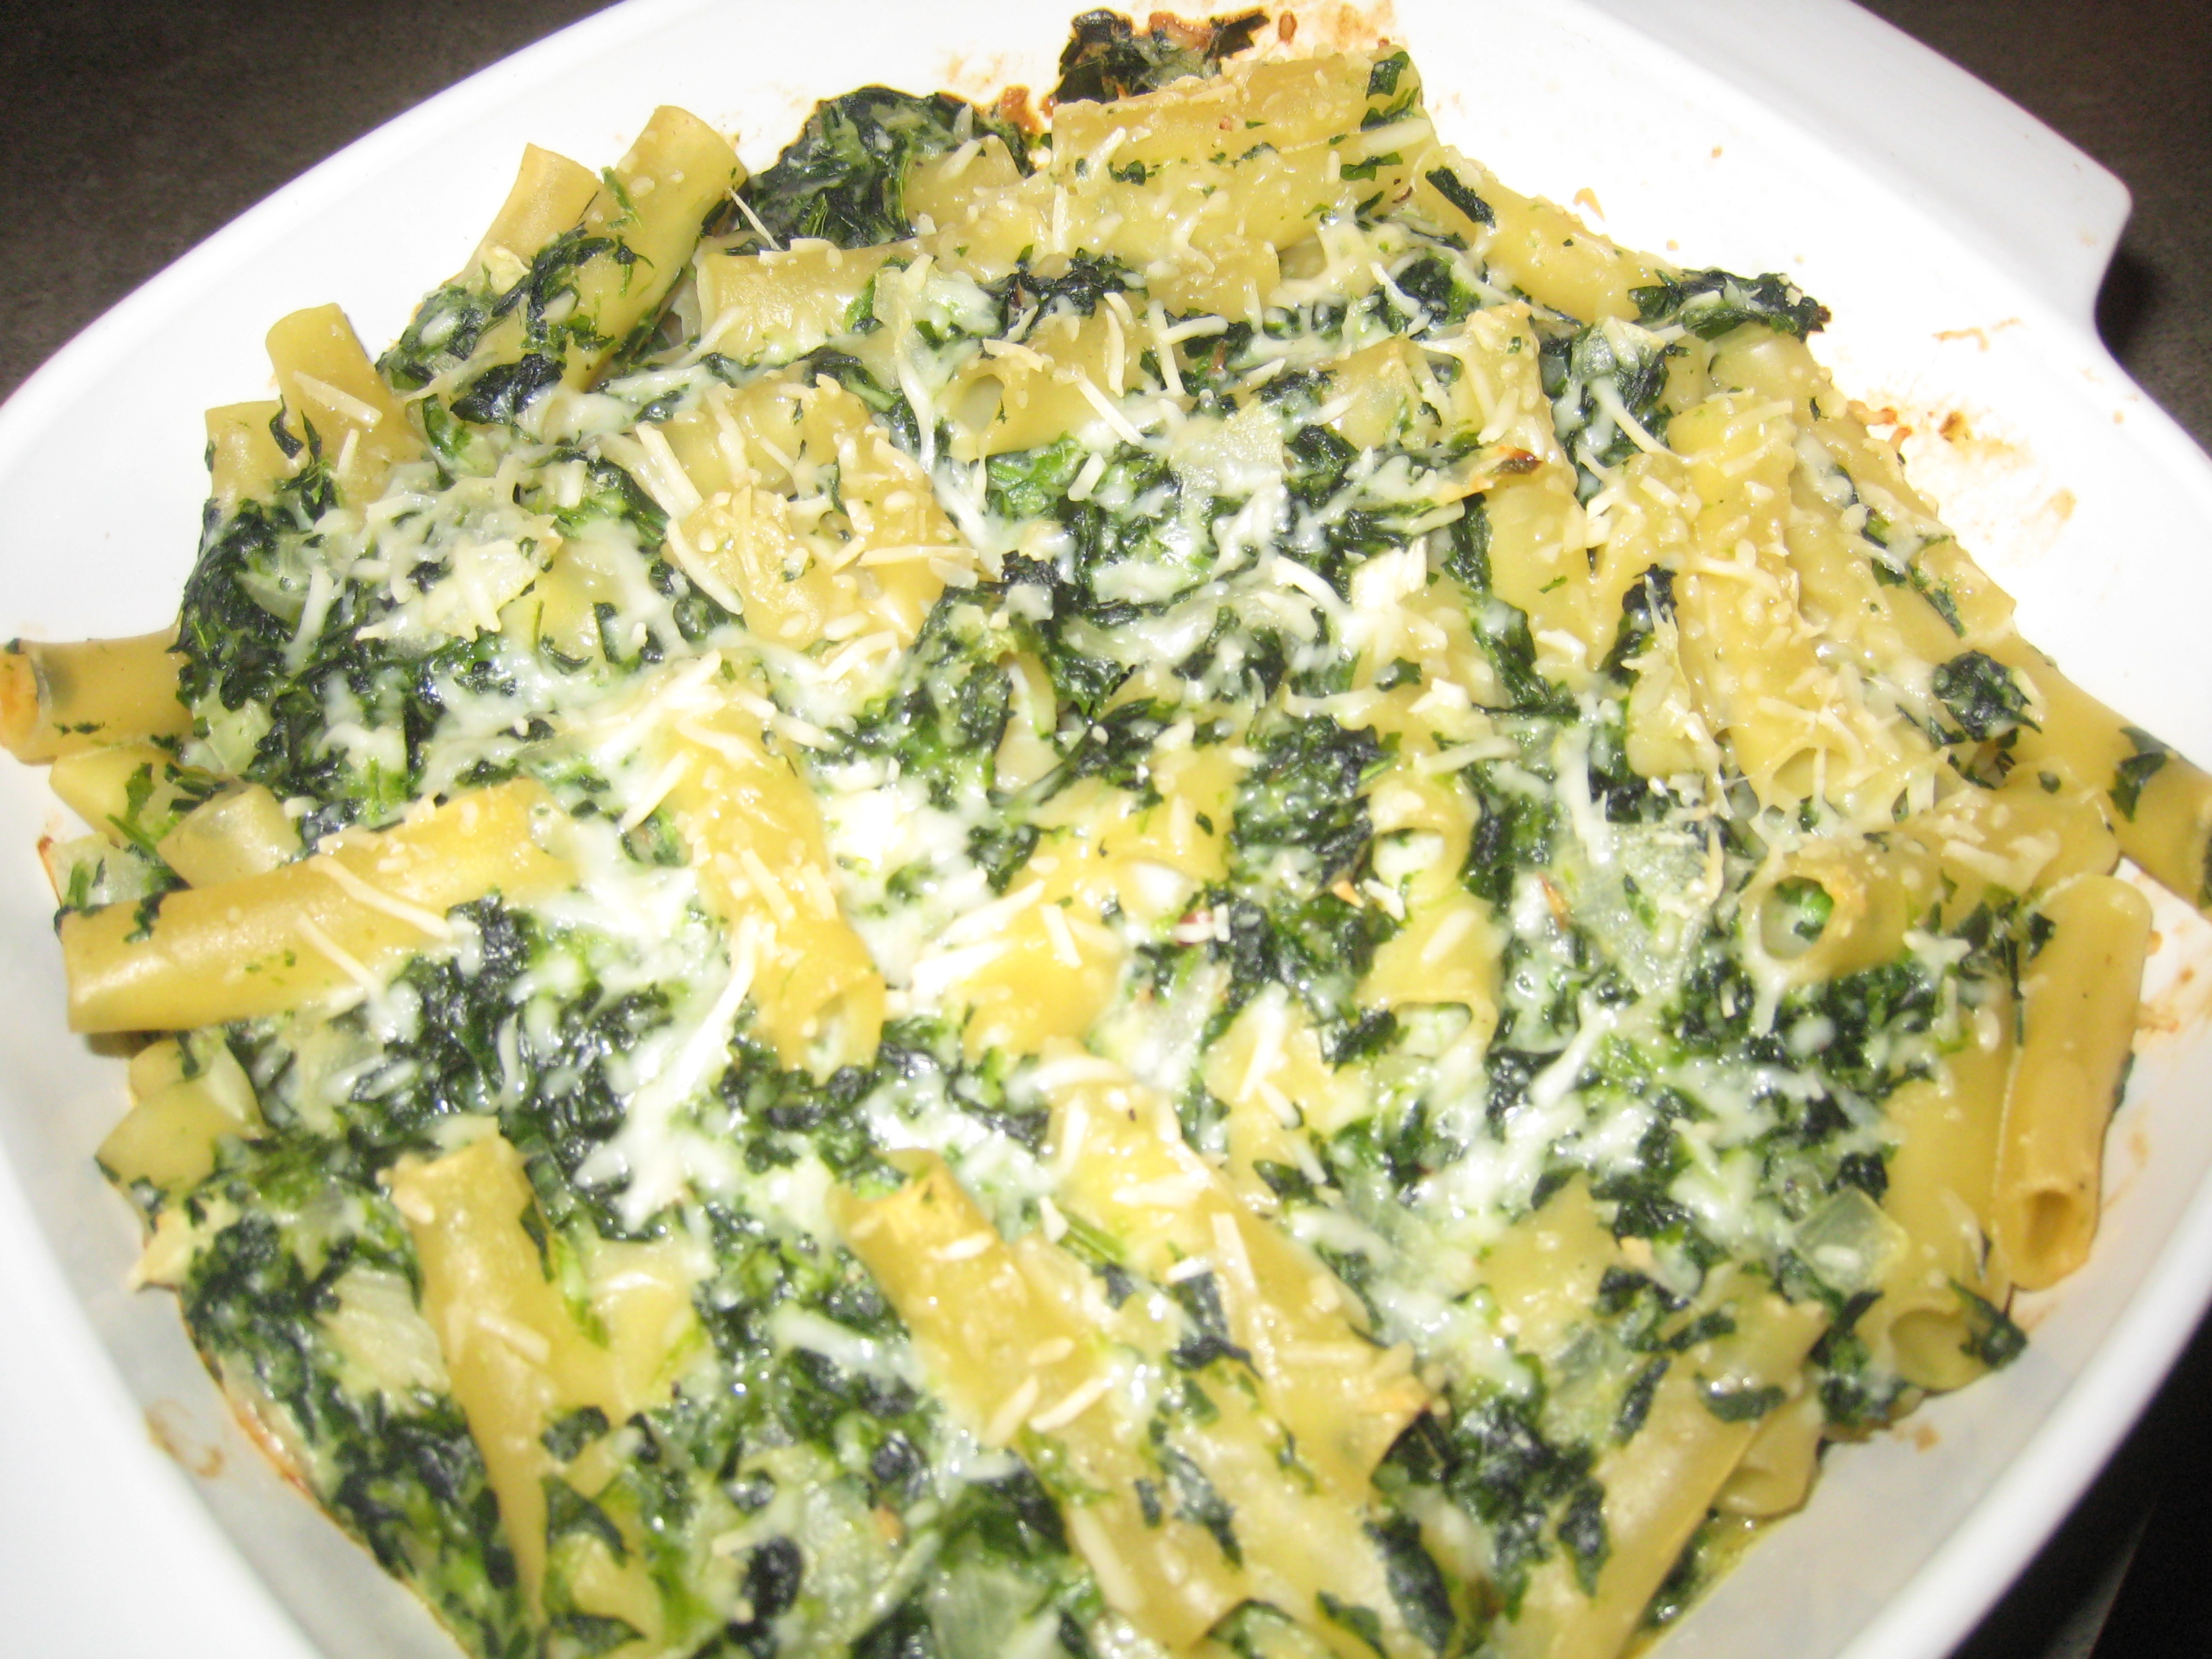 Baked Spinach and Noodles